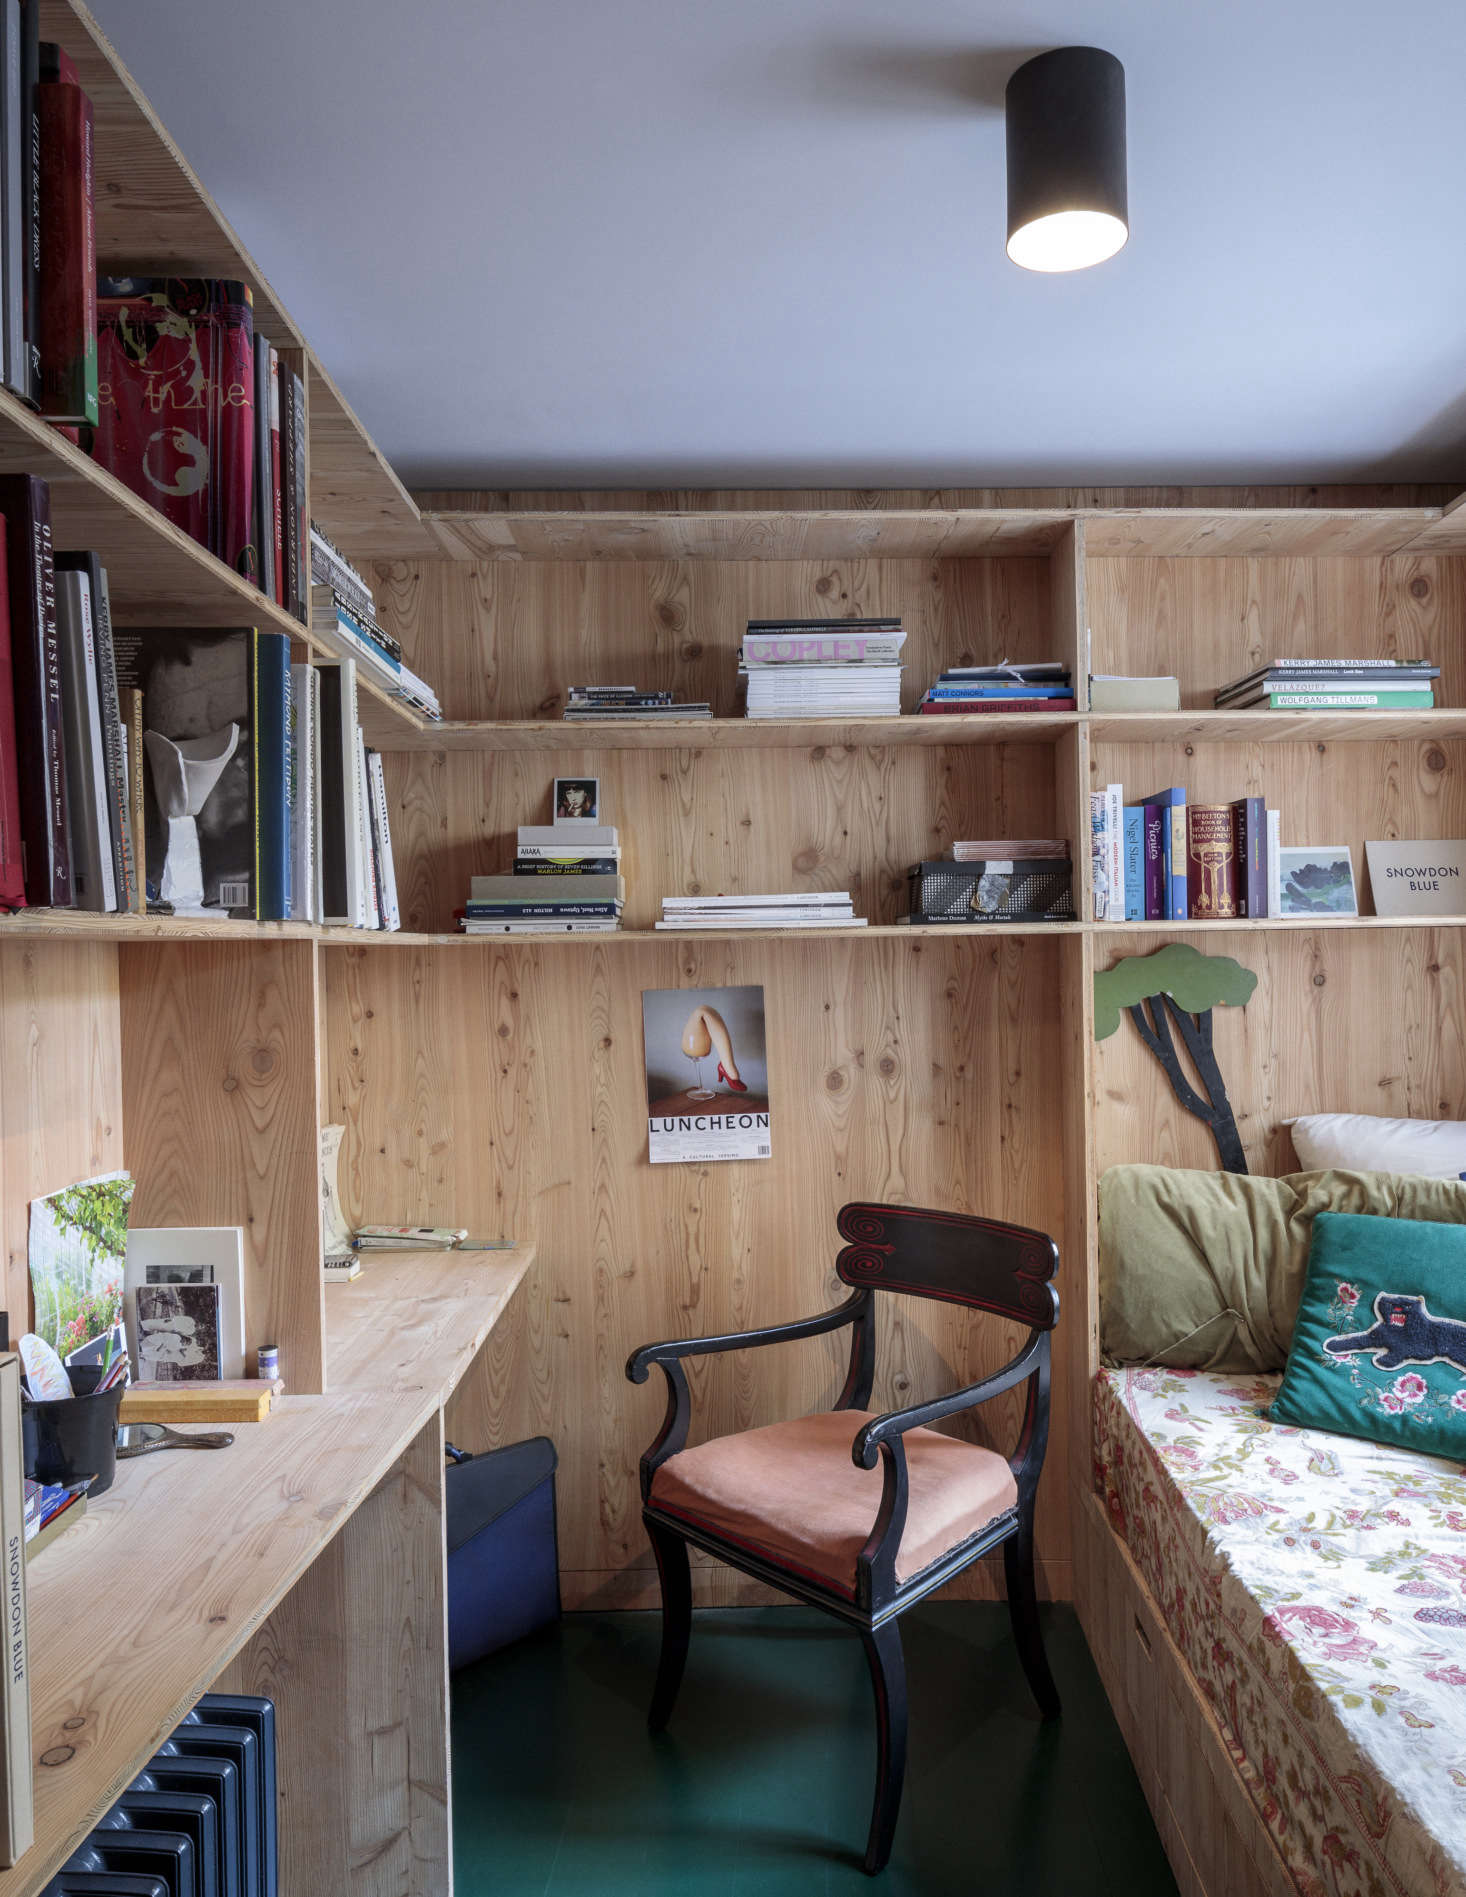 Designed to feel like a retreat, the combination study and guest room has a built-in daybed, desk, and shelving of larch. The old floorboards are painted a glossy deep green.